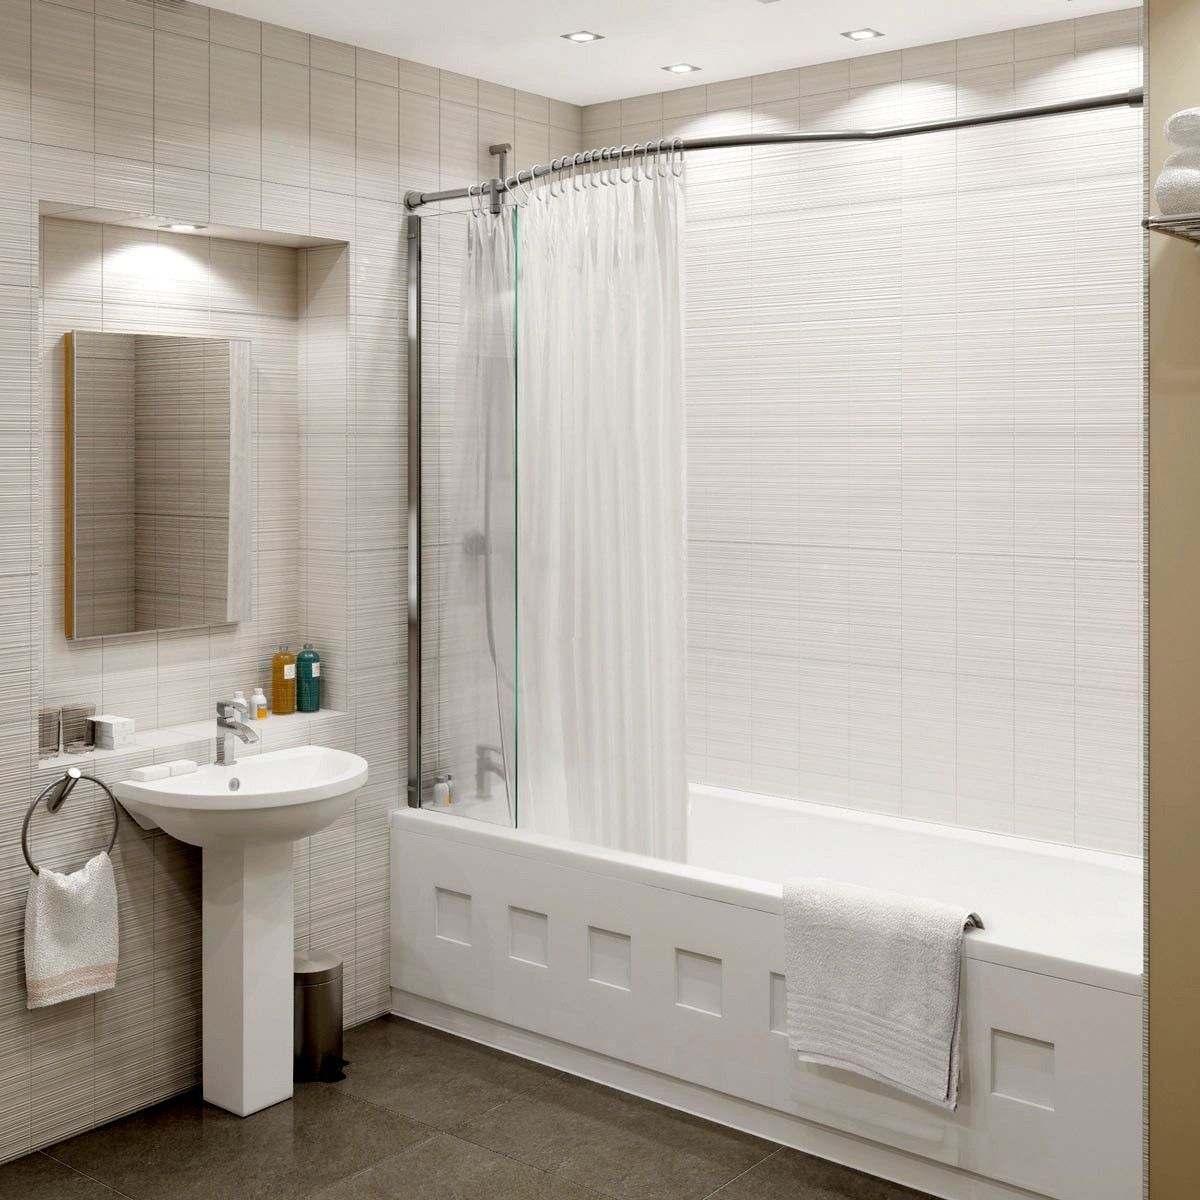 kudos inspire over bath shower panel uk bathrooms shower screens over bath shower bath screens